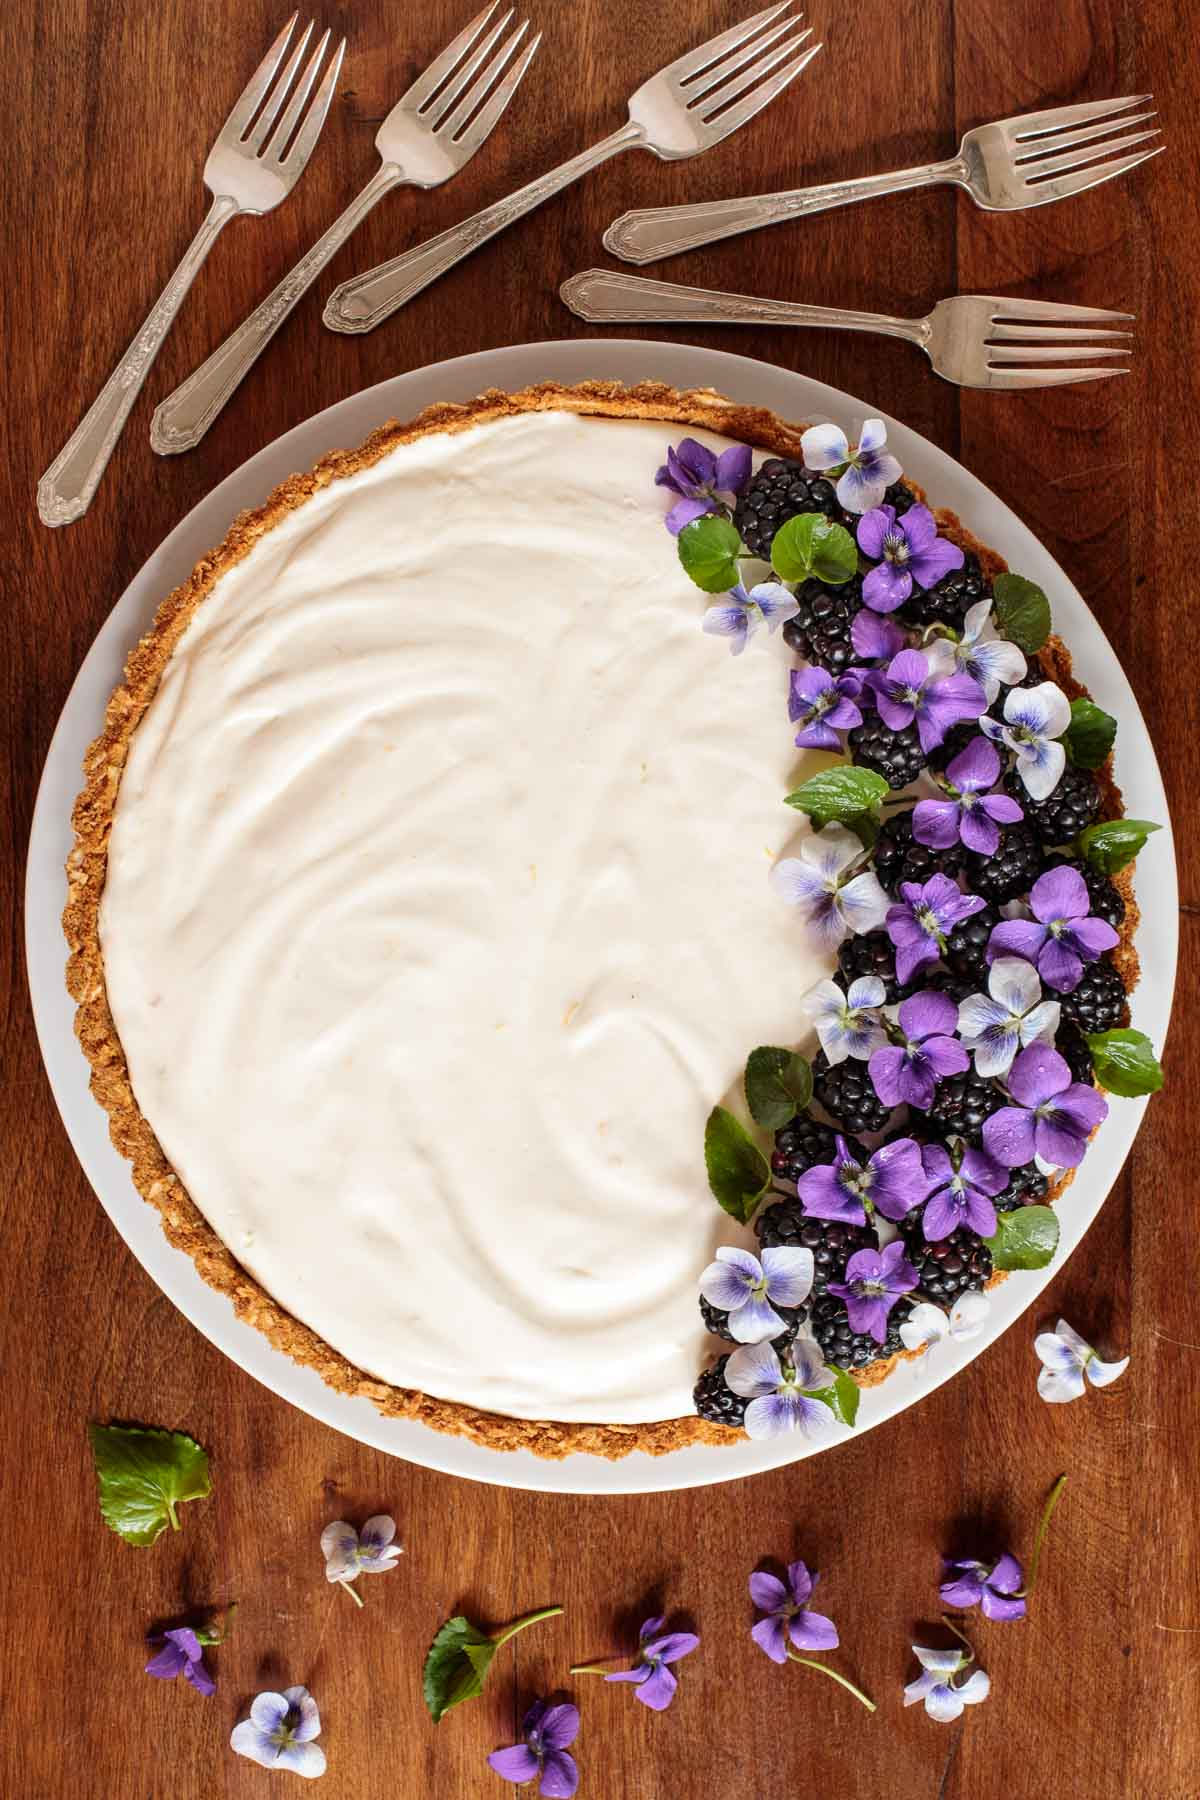 Overhead photo of a Limoncello Lemon Tart on a wood table surrounded by serving forks and wild violets.